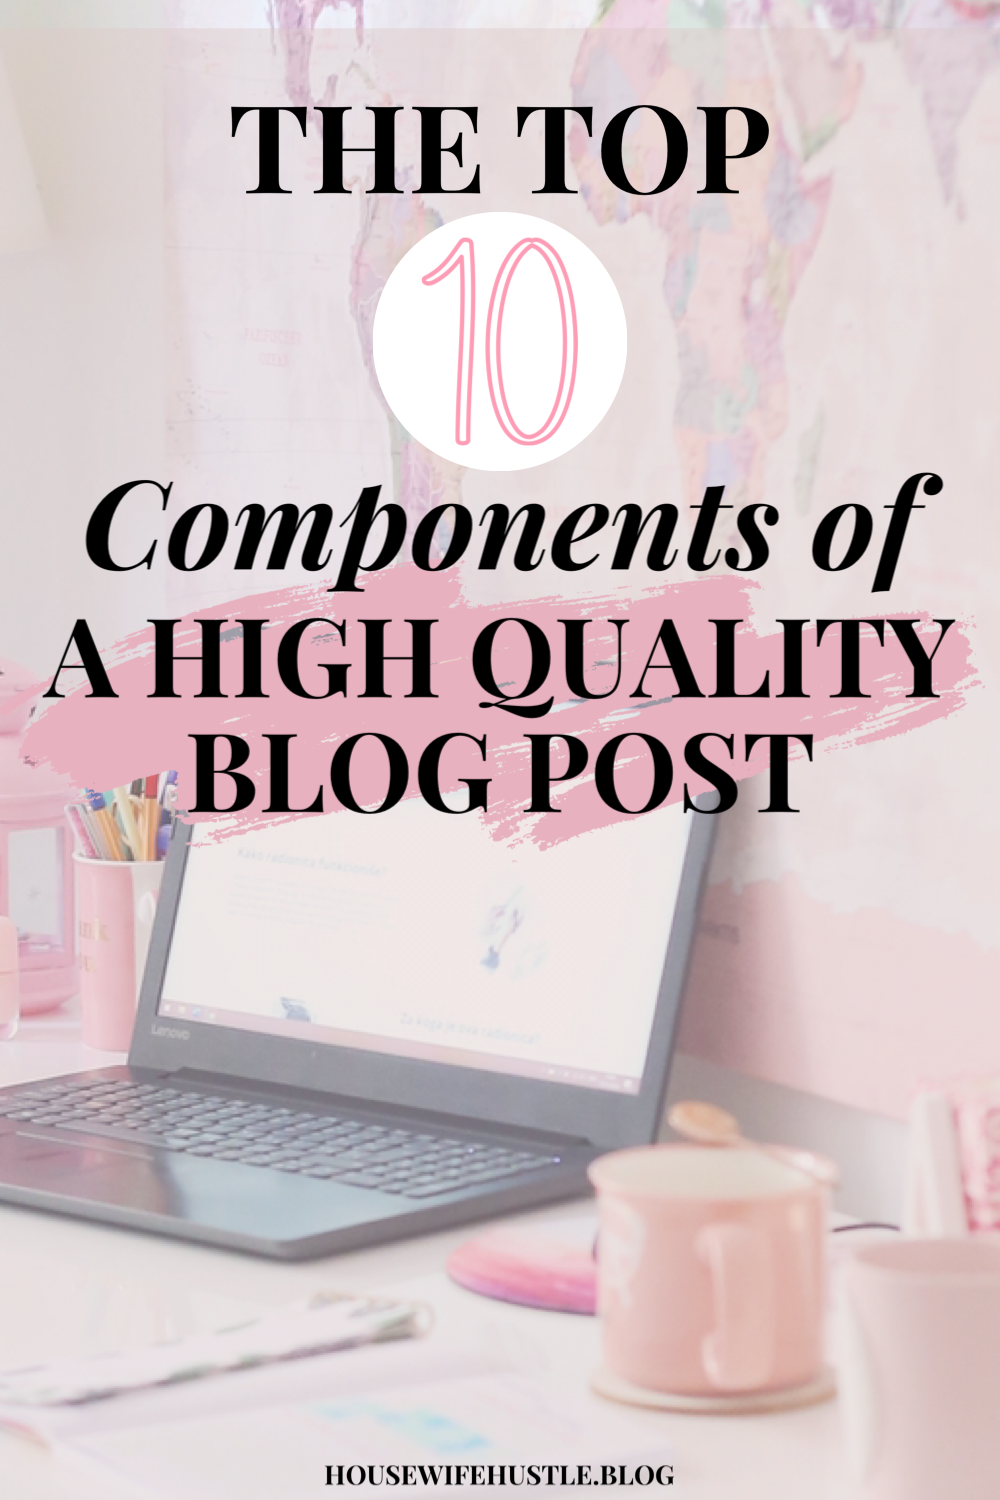 Learn how to write high quality blog posts with these top 10 components. #blogposts #highquality #bloggingforbeginners #bloggingtips #howtowrite #bloggingformoney #housewifehustle